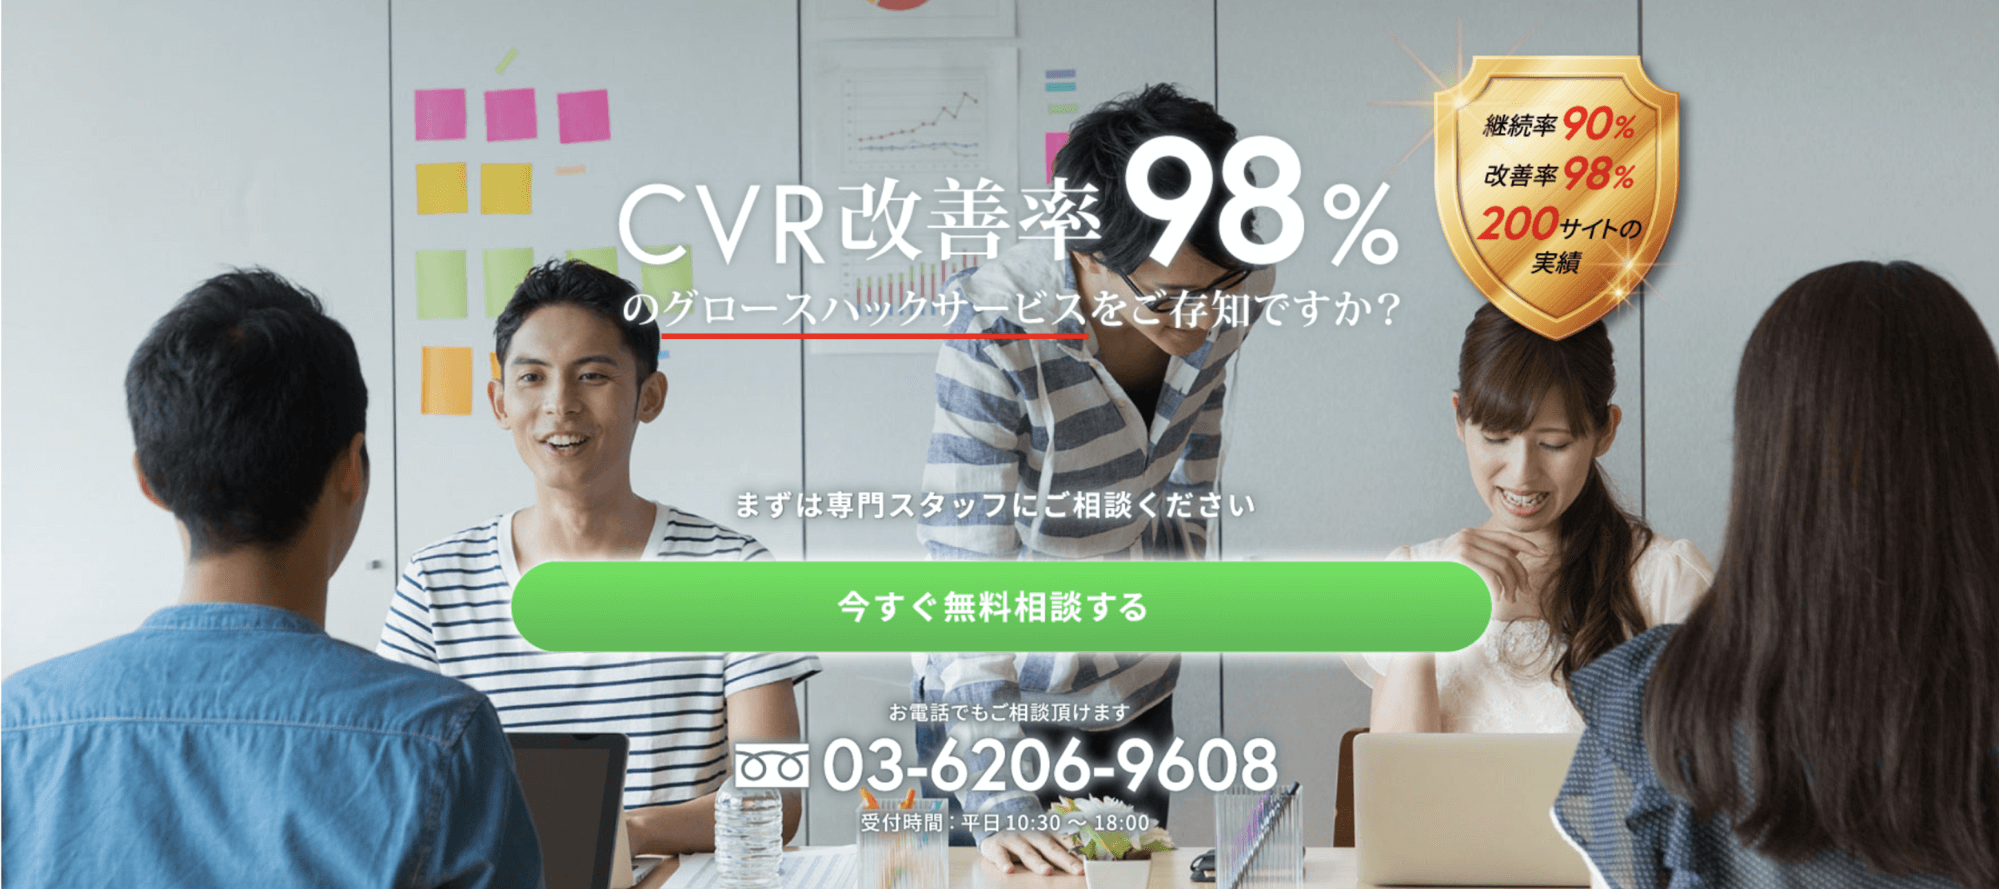 Dr.CMO CONSULTING ANALYZEのトップページ